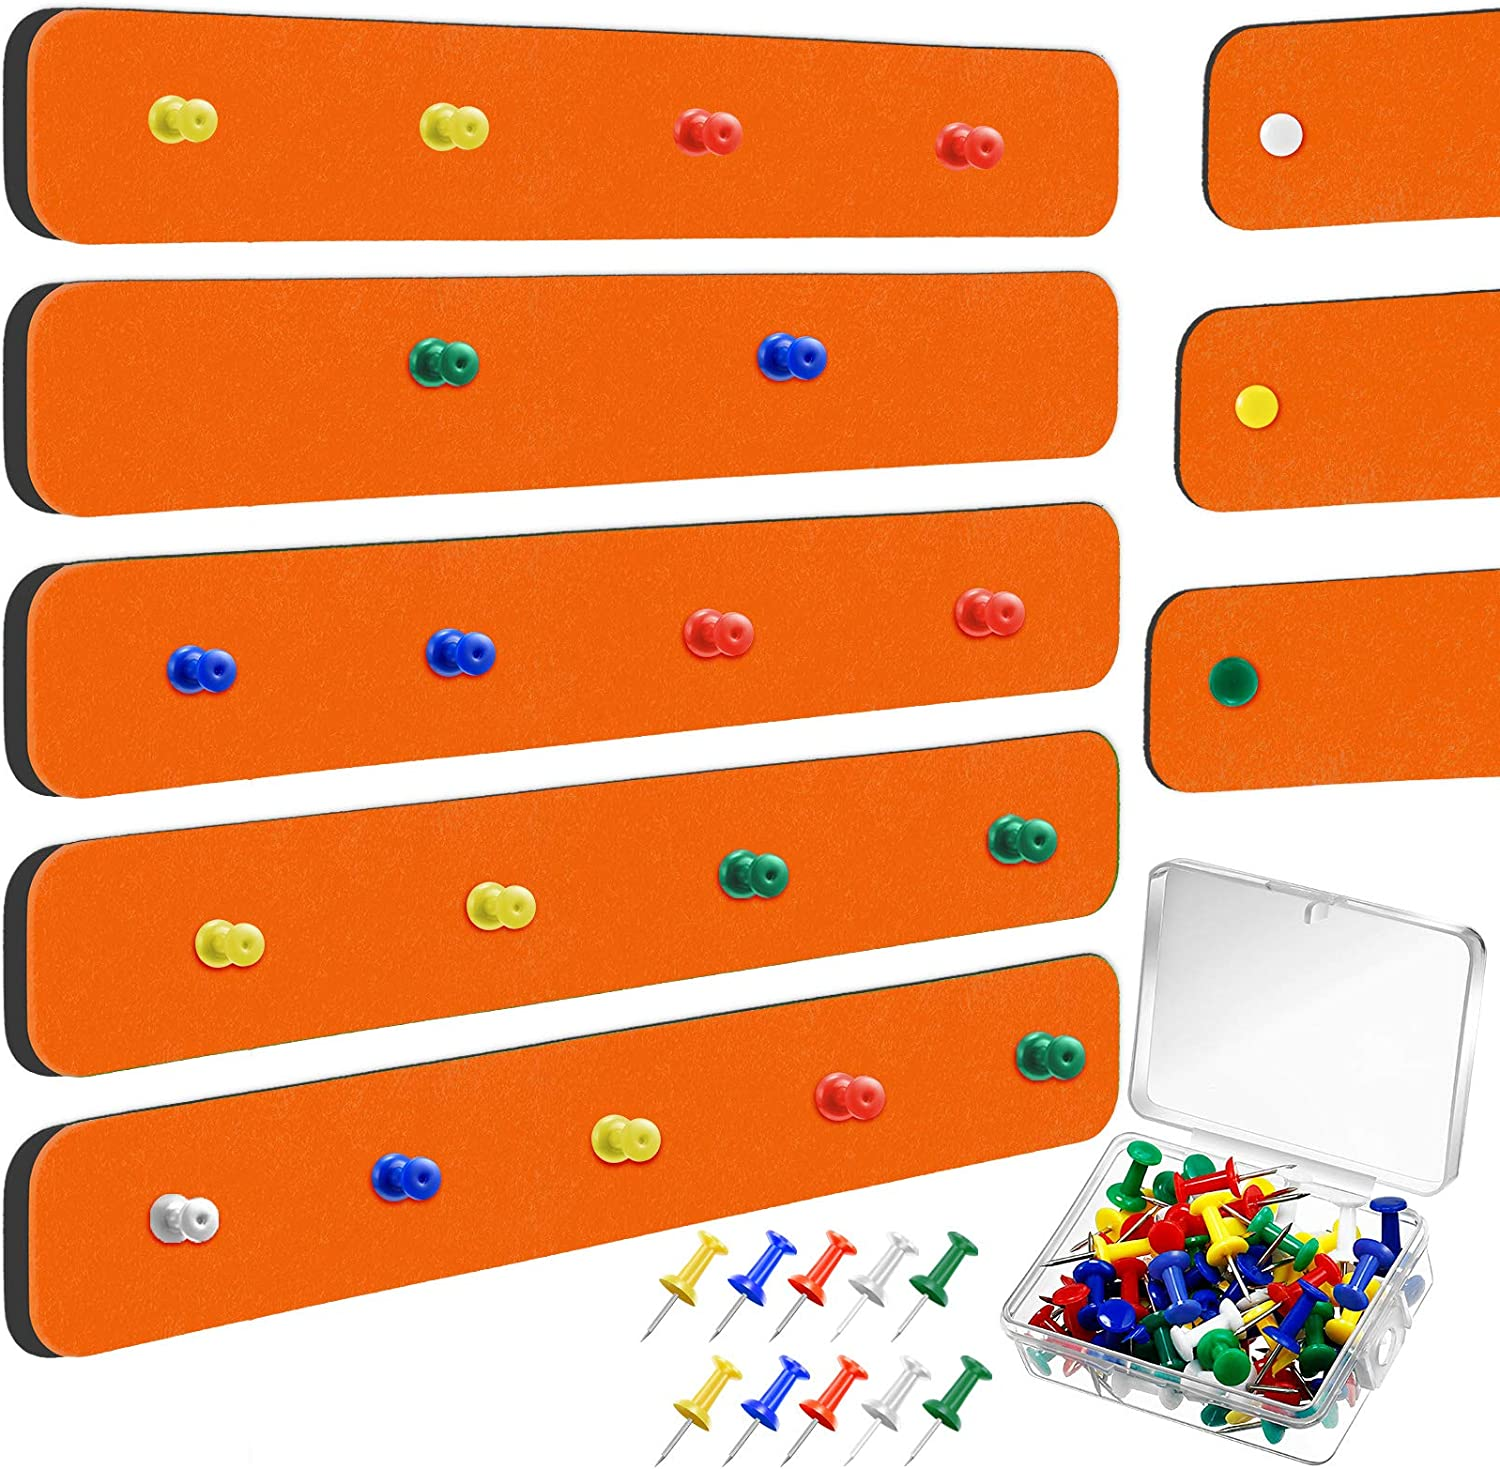 8 Pieces Felt Bulletin Board Bar Strip Self-Adhesive Pin Board Bar Frameless Wall Memo Strip with 40 Pieces Pushpins for Office Classroom Home (Orange)